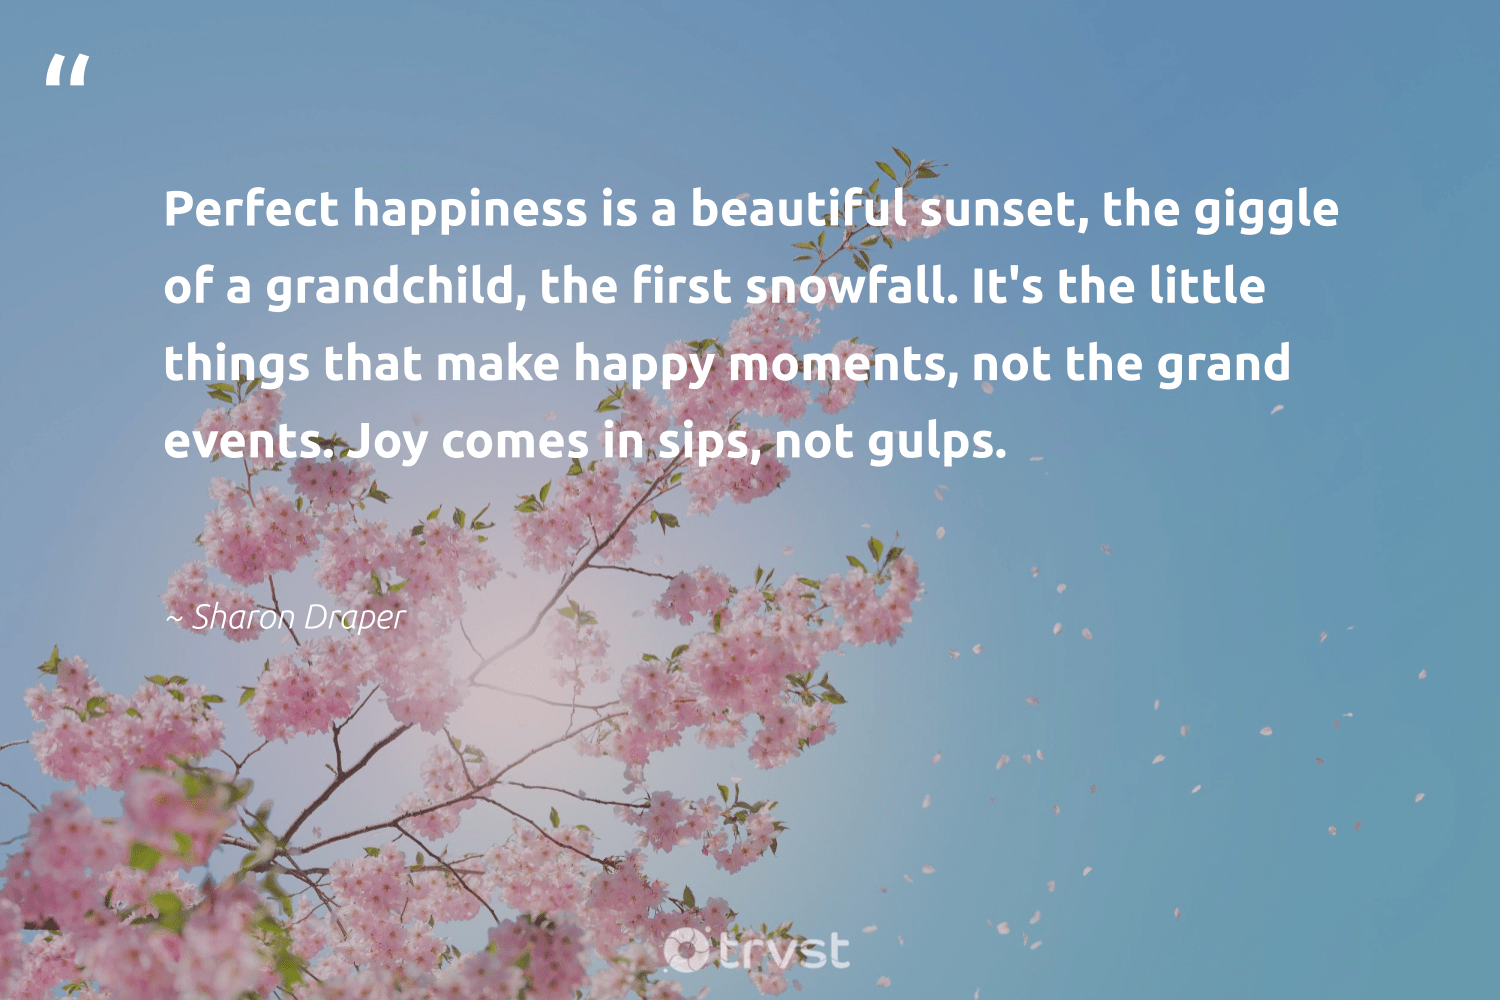 """""""Perfect happiness is a beautiful sunset, the giggle of a grandchild, the first snowfall. It's the little things that make happy moments, not the grand events. Joy comes in sips, not gulps.""""  - Sharon Draper #trvst #quotes #sunset #happy #happiness #mindset #bethechange #begreat #ecoconscious #nevergiveup #socialchange #health"""